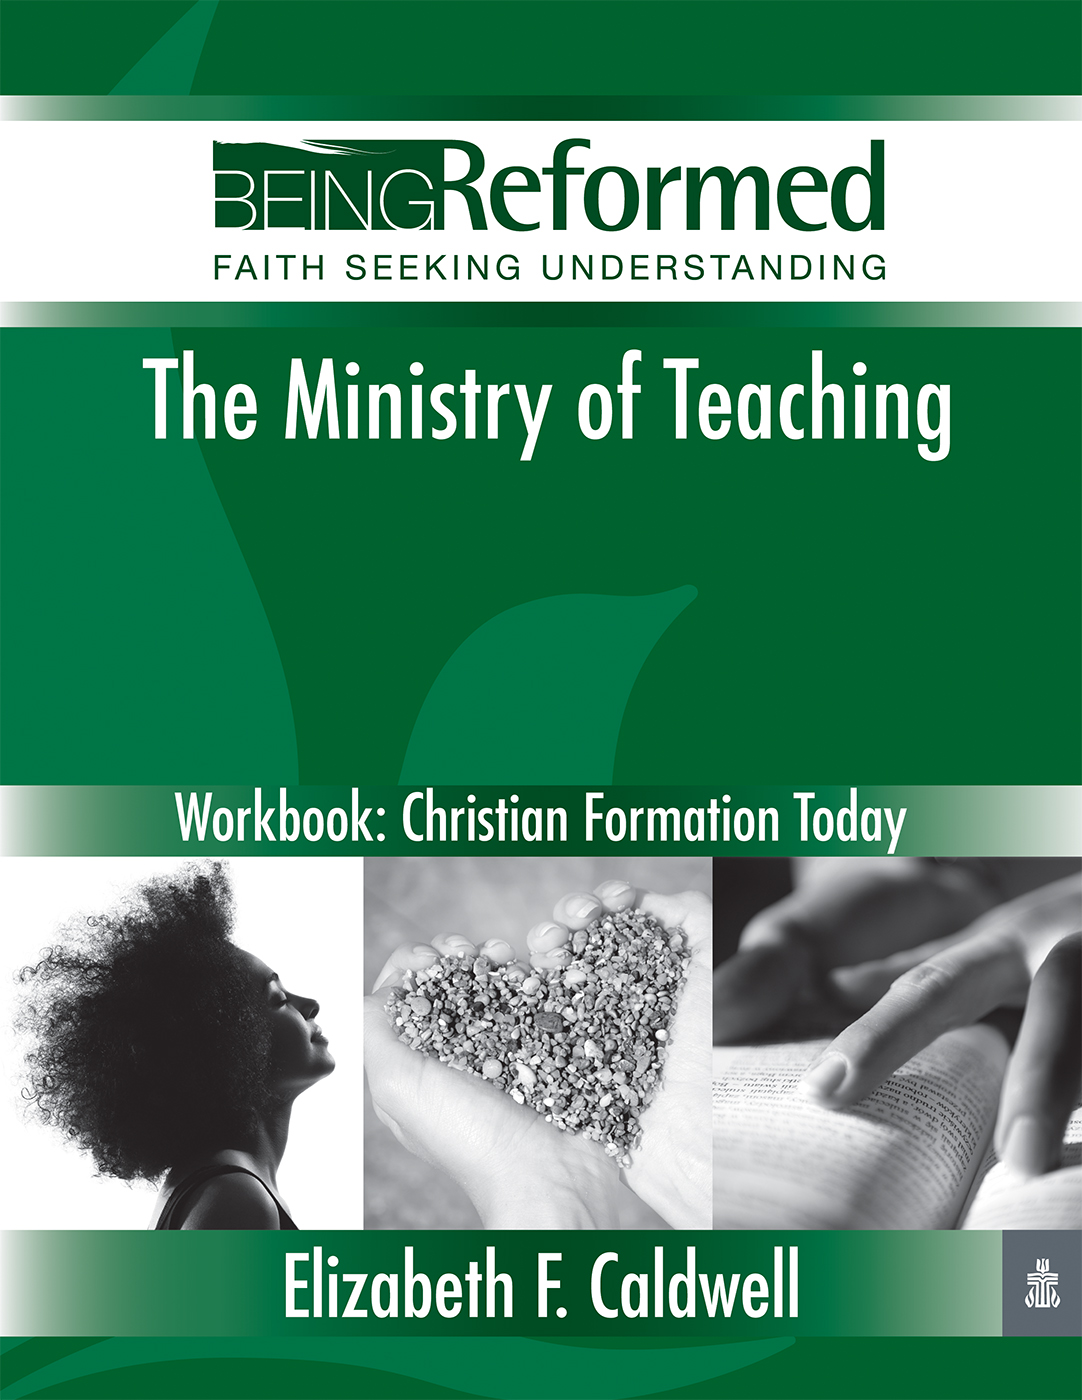 The Ministry of Teaching: Christian Formation Today